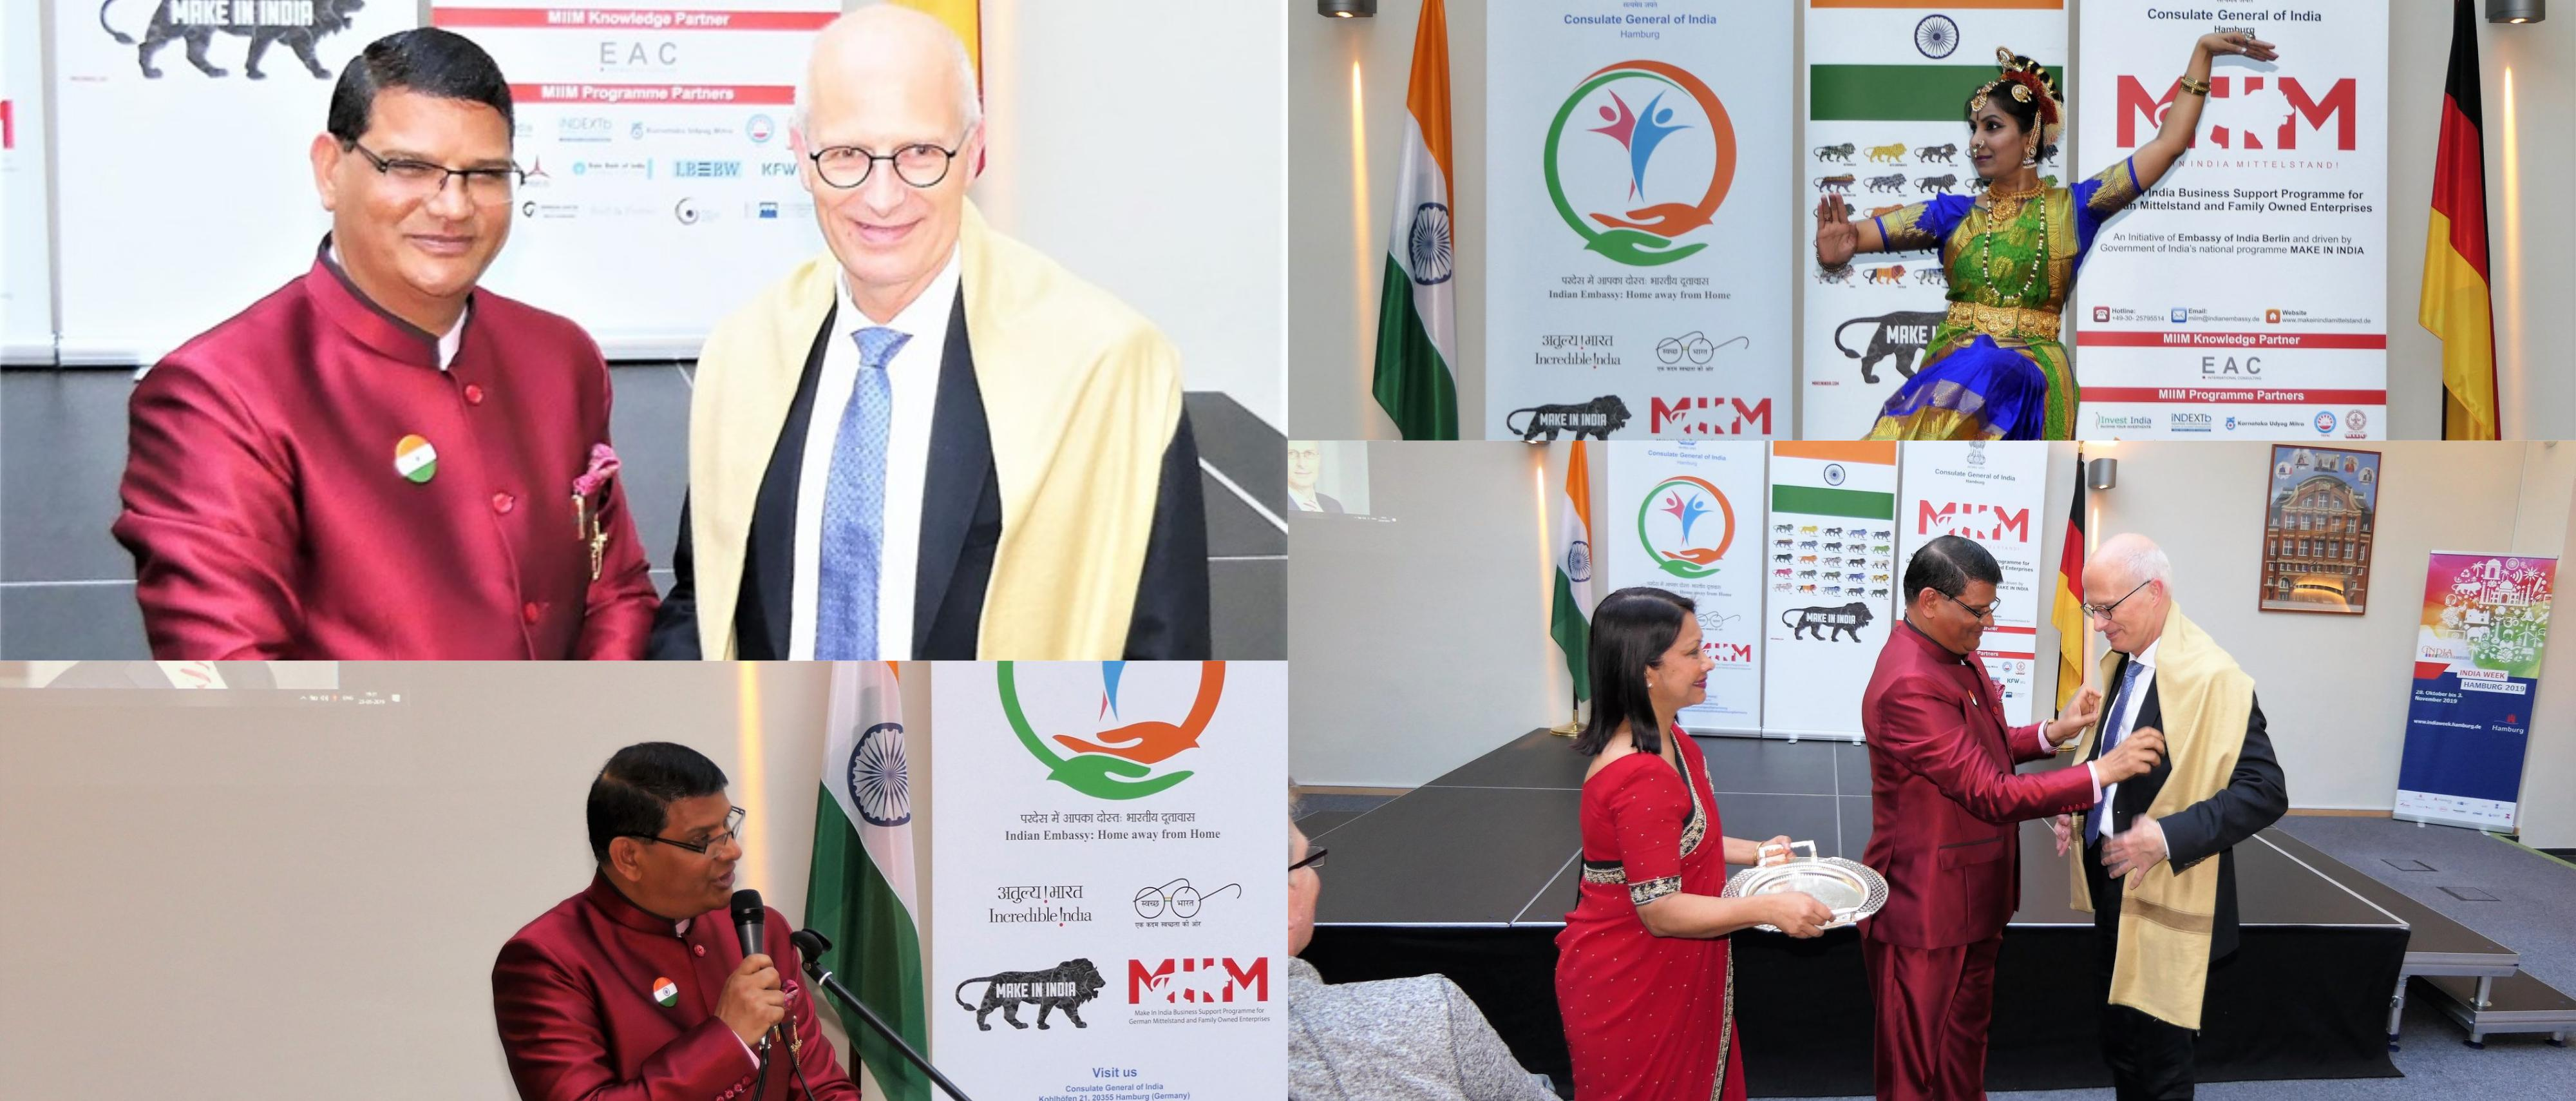 Visit of First Mayor of Hamburg to the Consulate General of India, Hamburg (May 23, 2019)